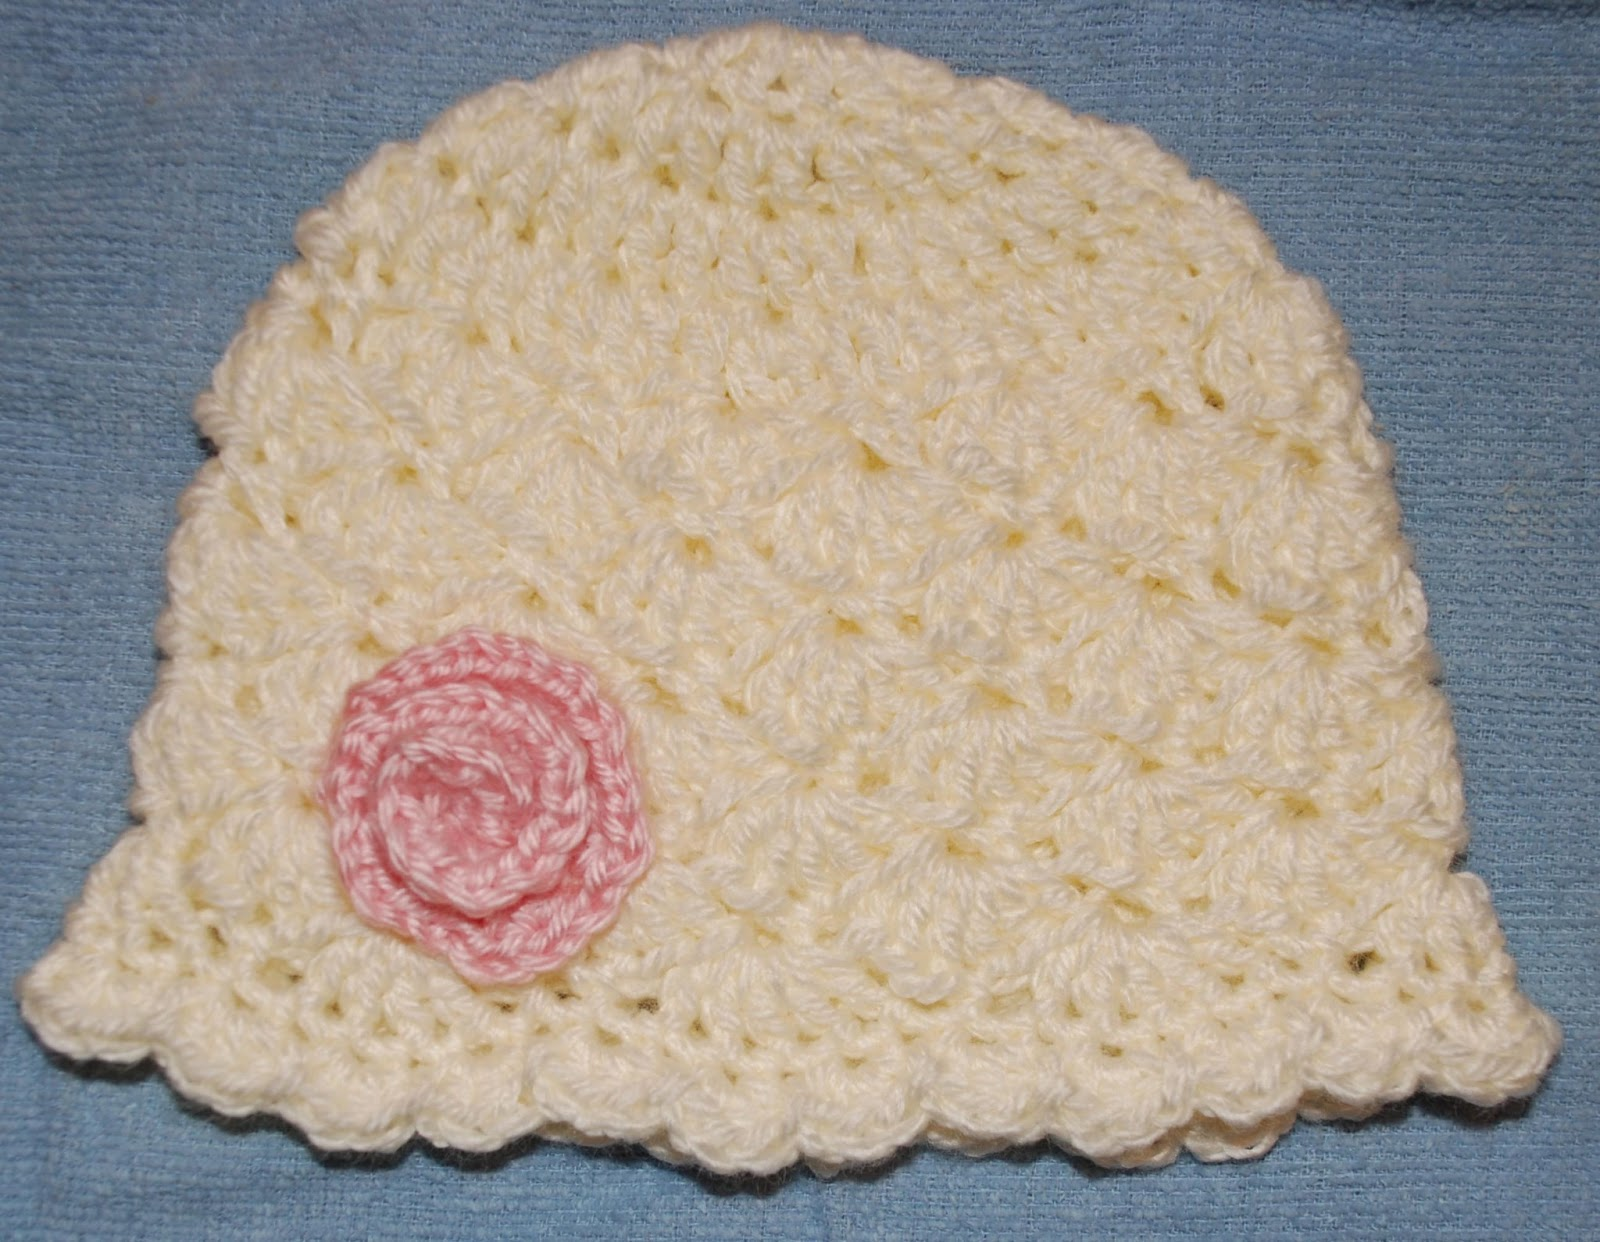 Crochet Hat Pattern Shell Stitch : Amys Crochet Creative Creations: Crochet Shell Newborn Hat